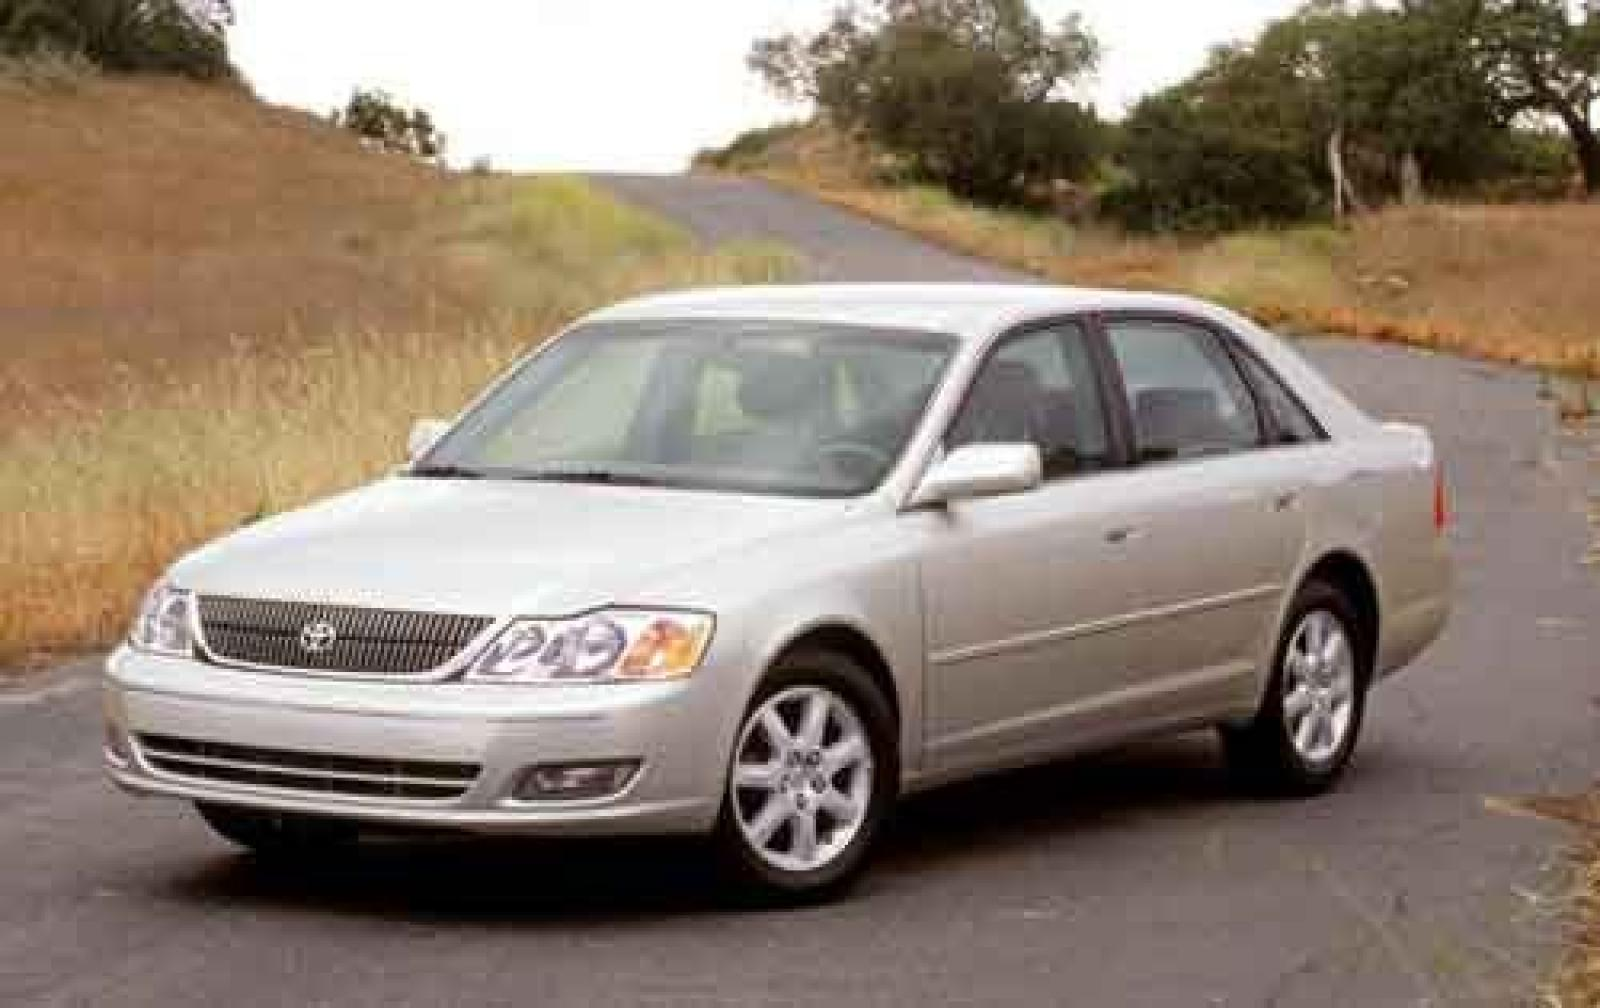 2002 Toyota Avalon Information And Photos Zombiedrive 02 Highlander Stereo Wiring 1 800 1024 1280 1600 Origin